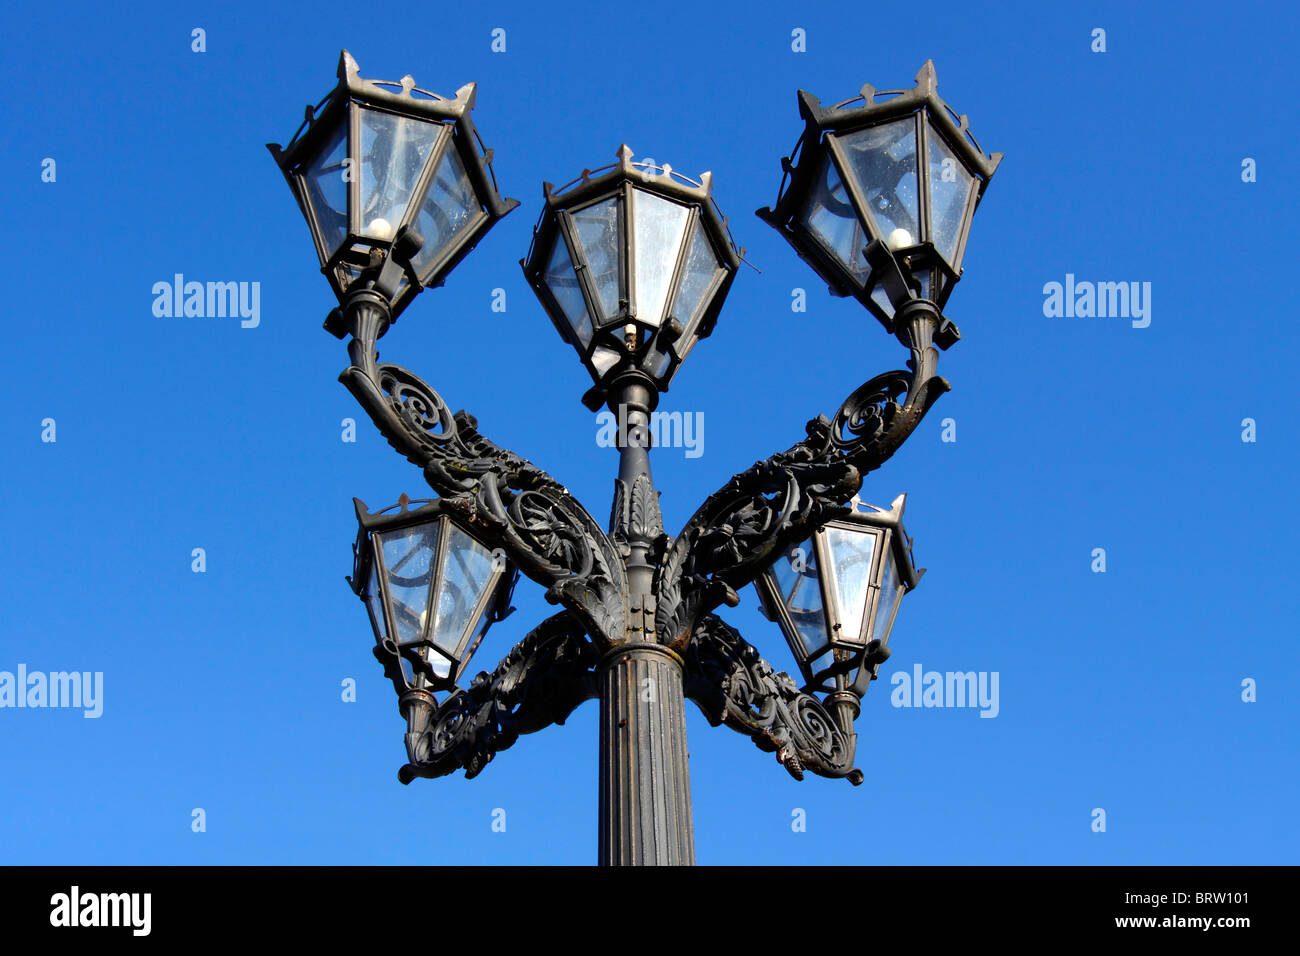 Historic candelabra, 5 lantern streetlight at the market place of Glueckstadt, Schleswig-Holstein, Germany, Europe - Stock Image